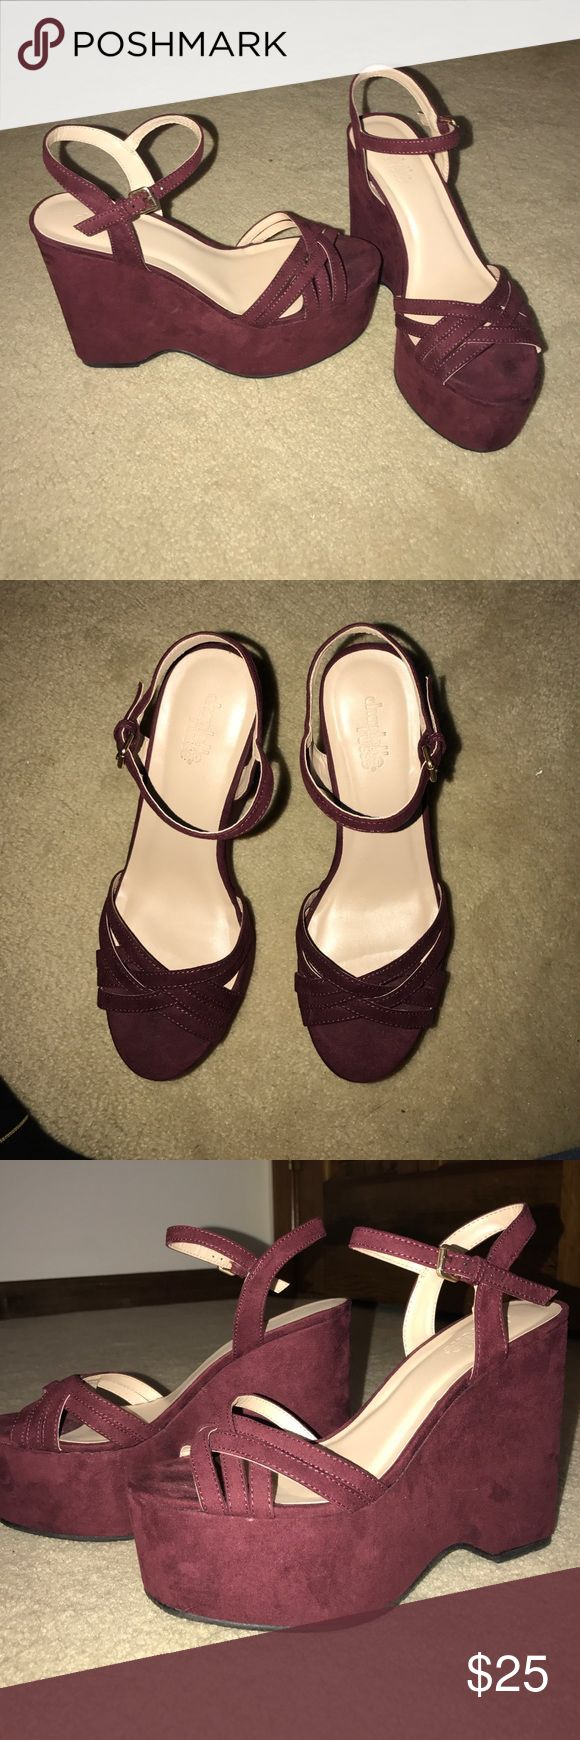 Charlotte Ruse Maroon Strap High heels Only wore ONCE for Prom, Are too high to wear casually for someone who never ever wears hells, super almost new condition, super cute style and color Charlotte Russe Shoes Wedges